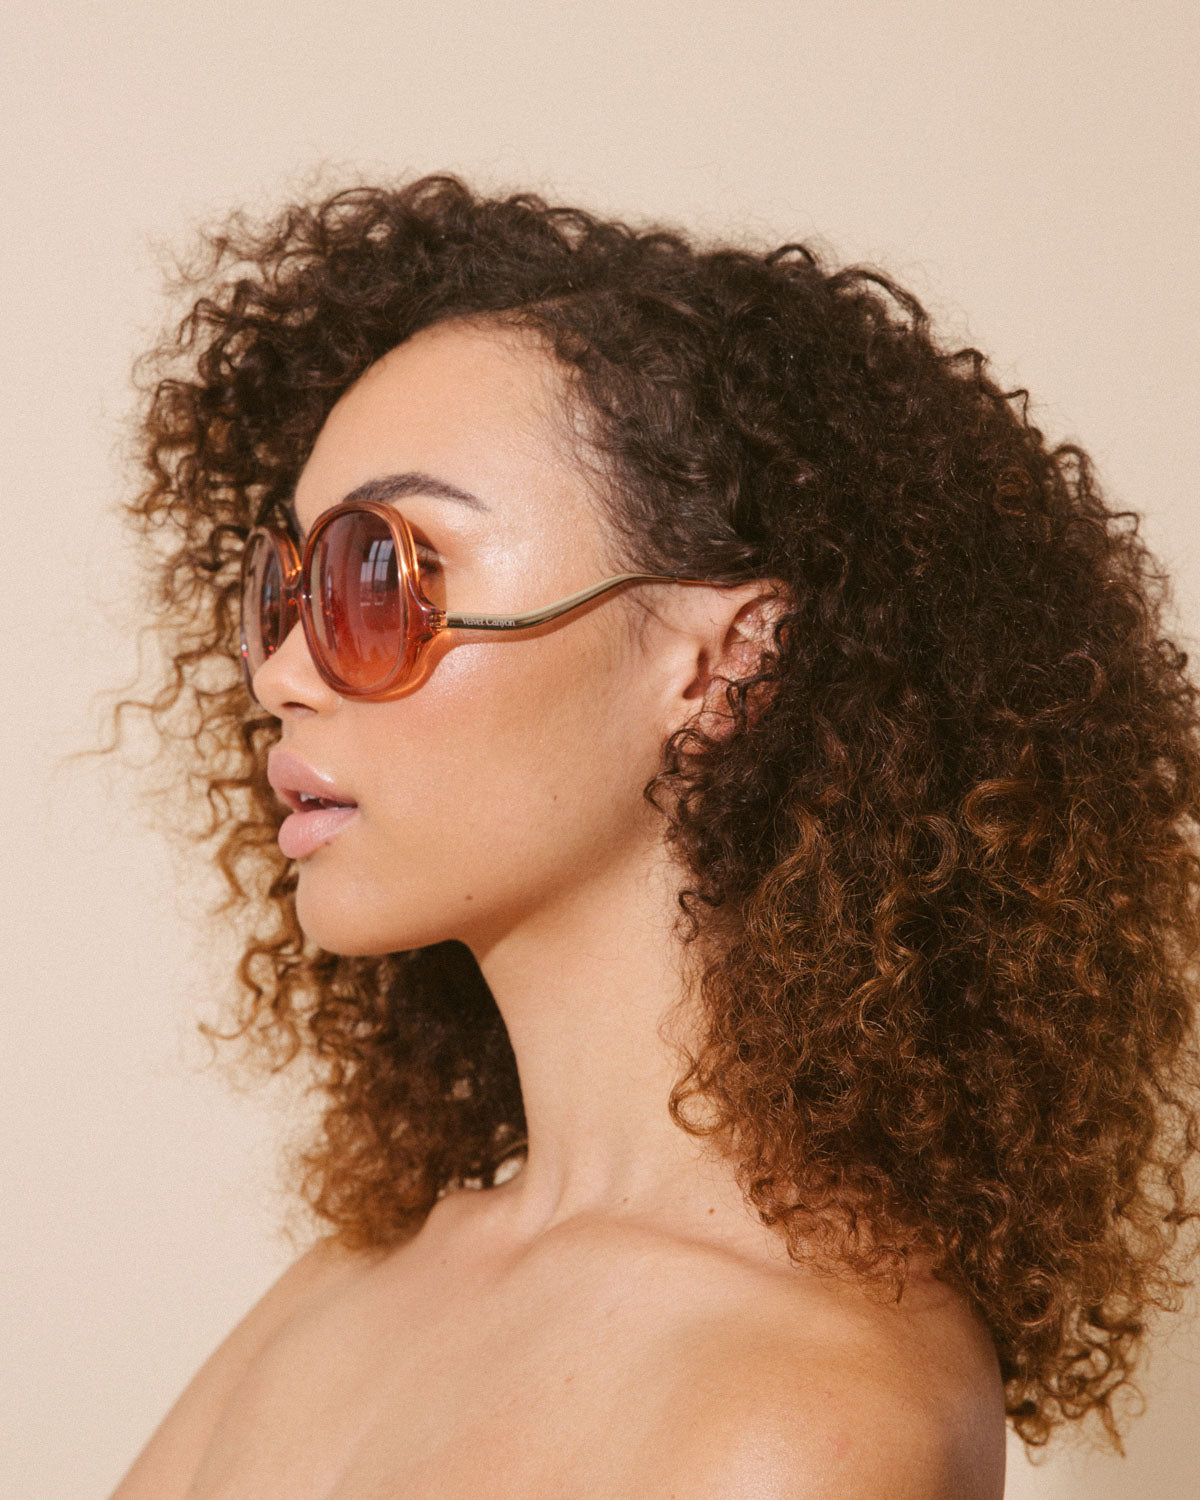 Velvet Canyon 70s vintage inspired sunglasses, Disco Inferno Red